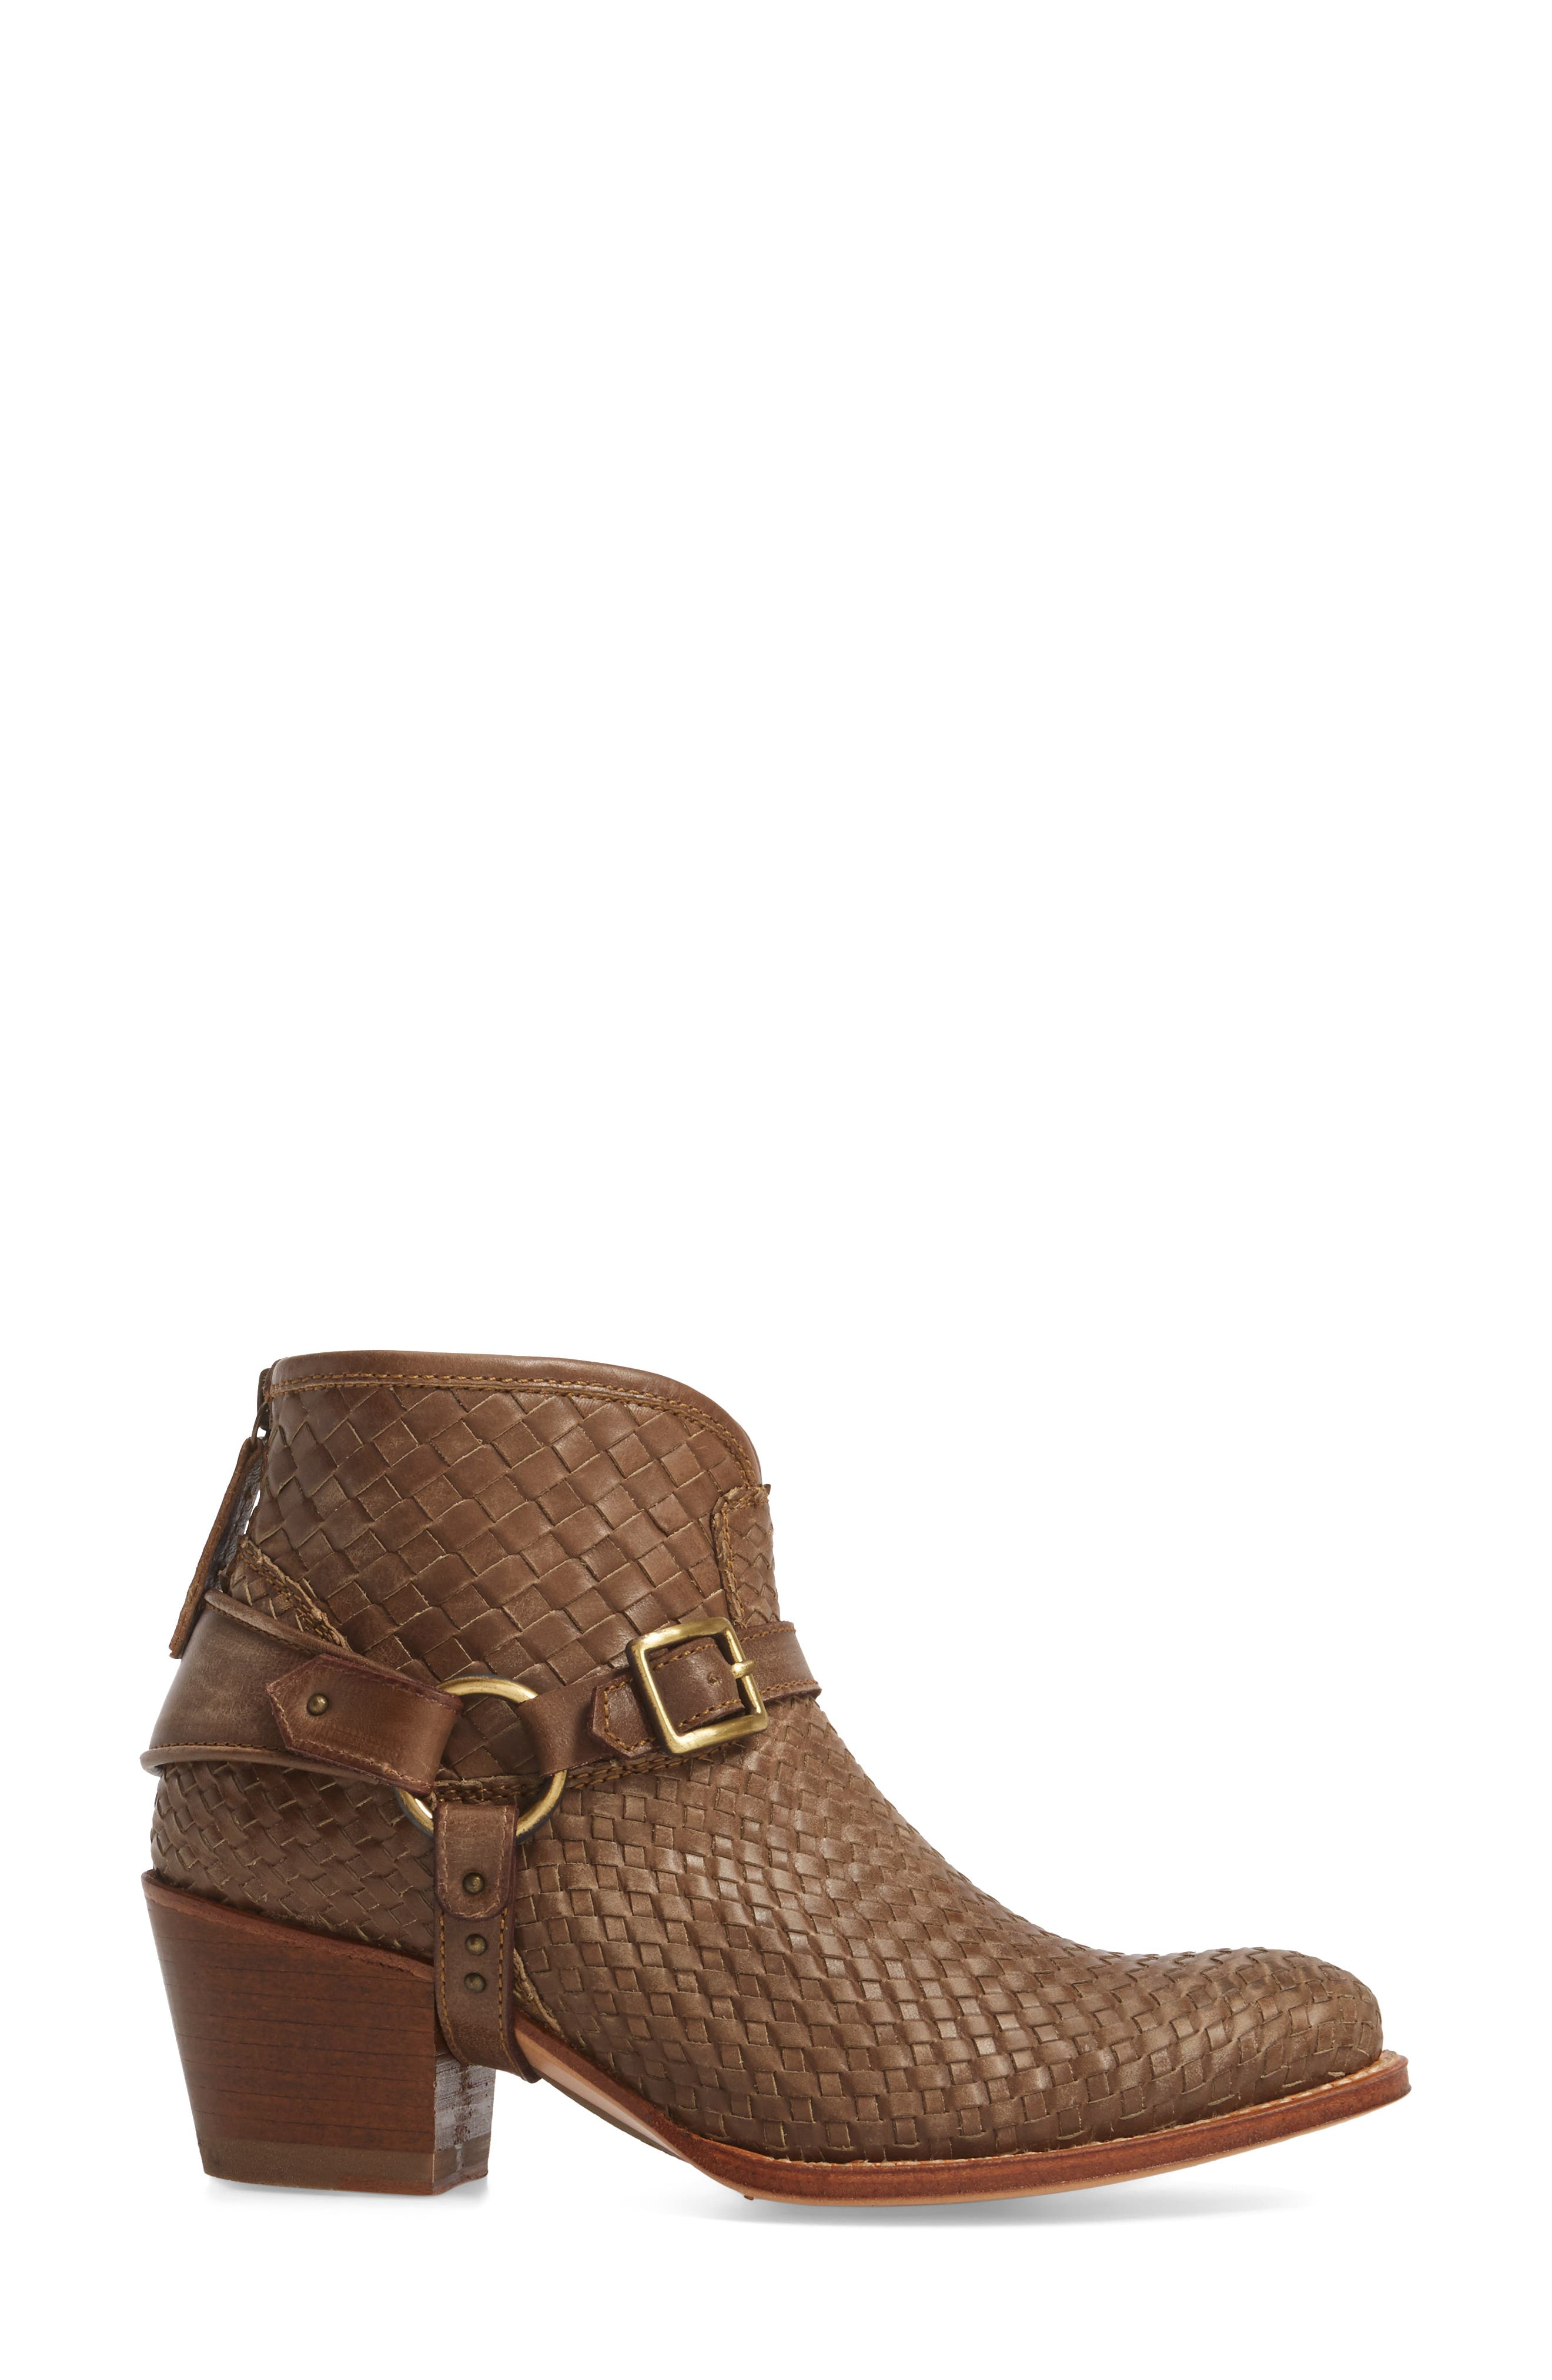 Two24 by Ariat Sollana Bootie,                             Alternate thumbnail 3, color,                             Brown Leather